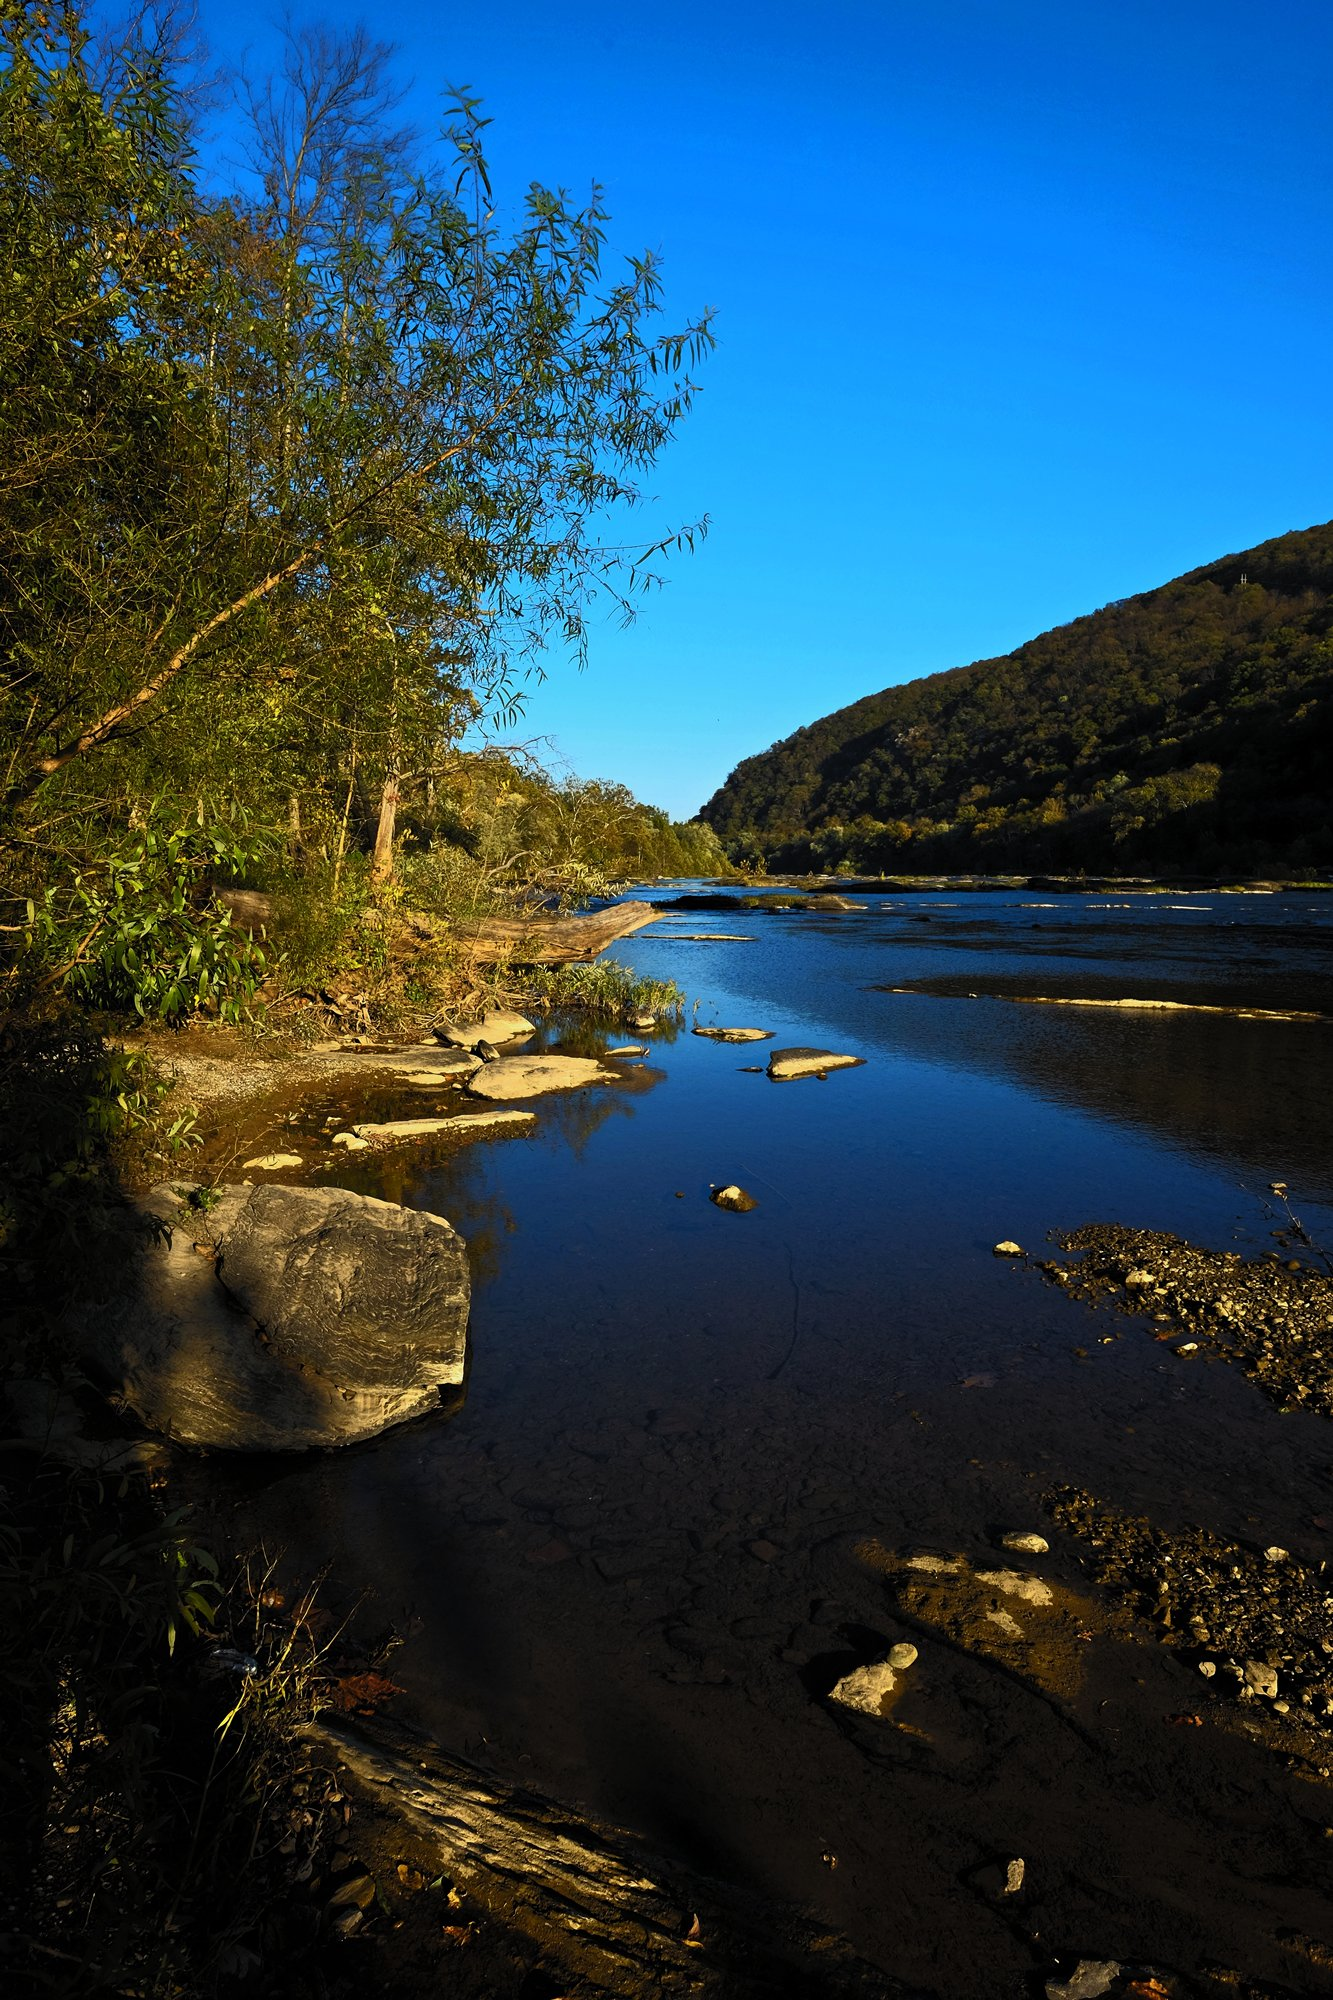 HarpersFerry-161023-6 copy.jpg